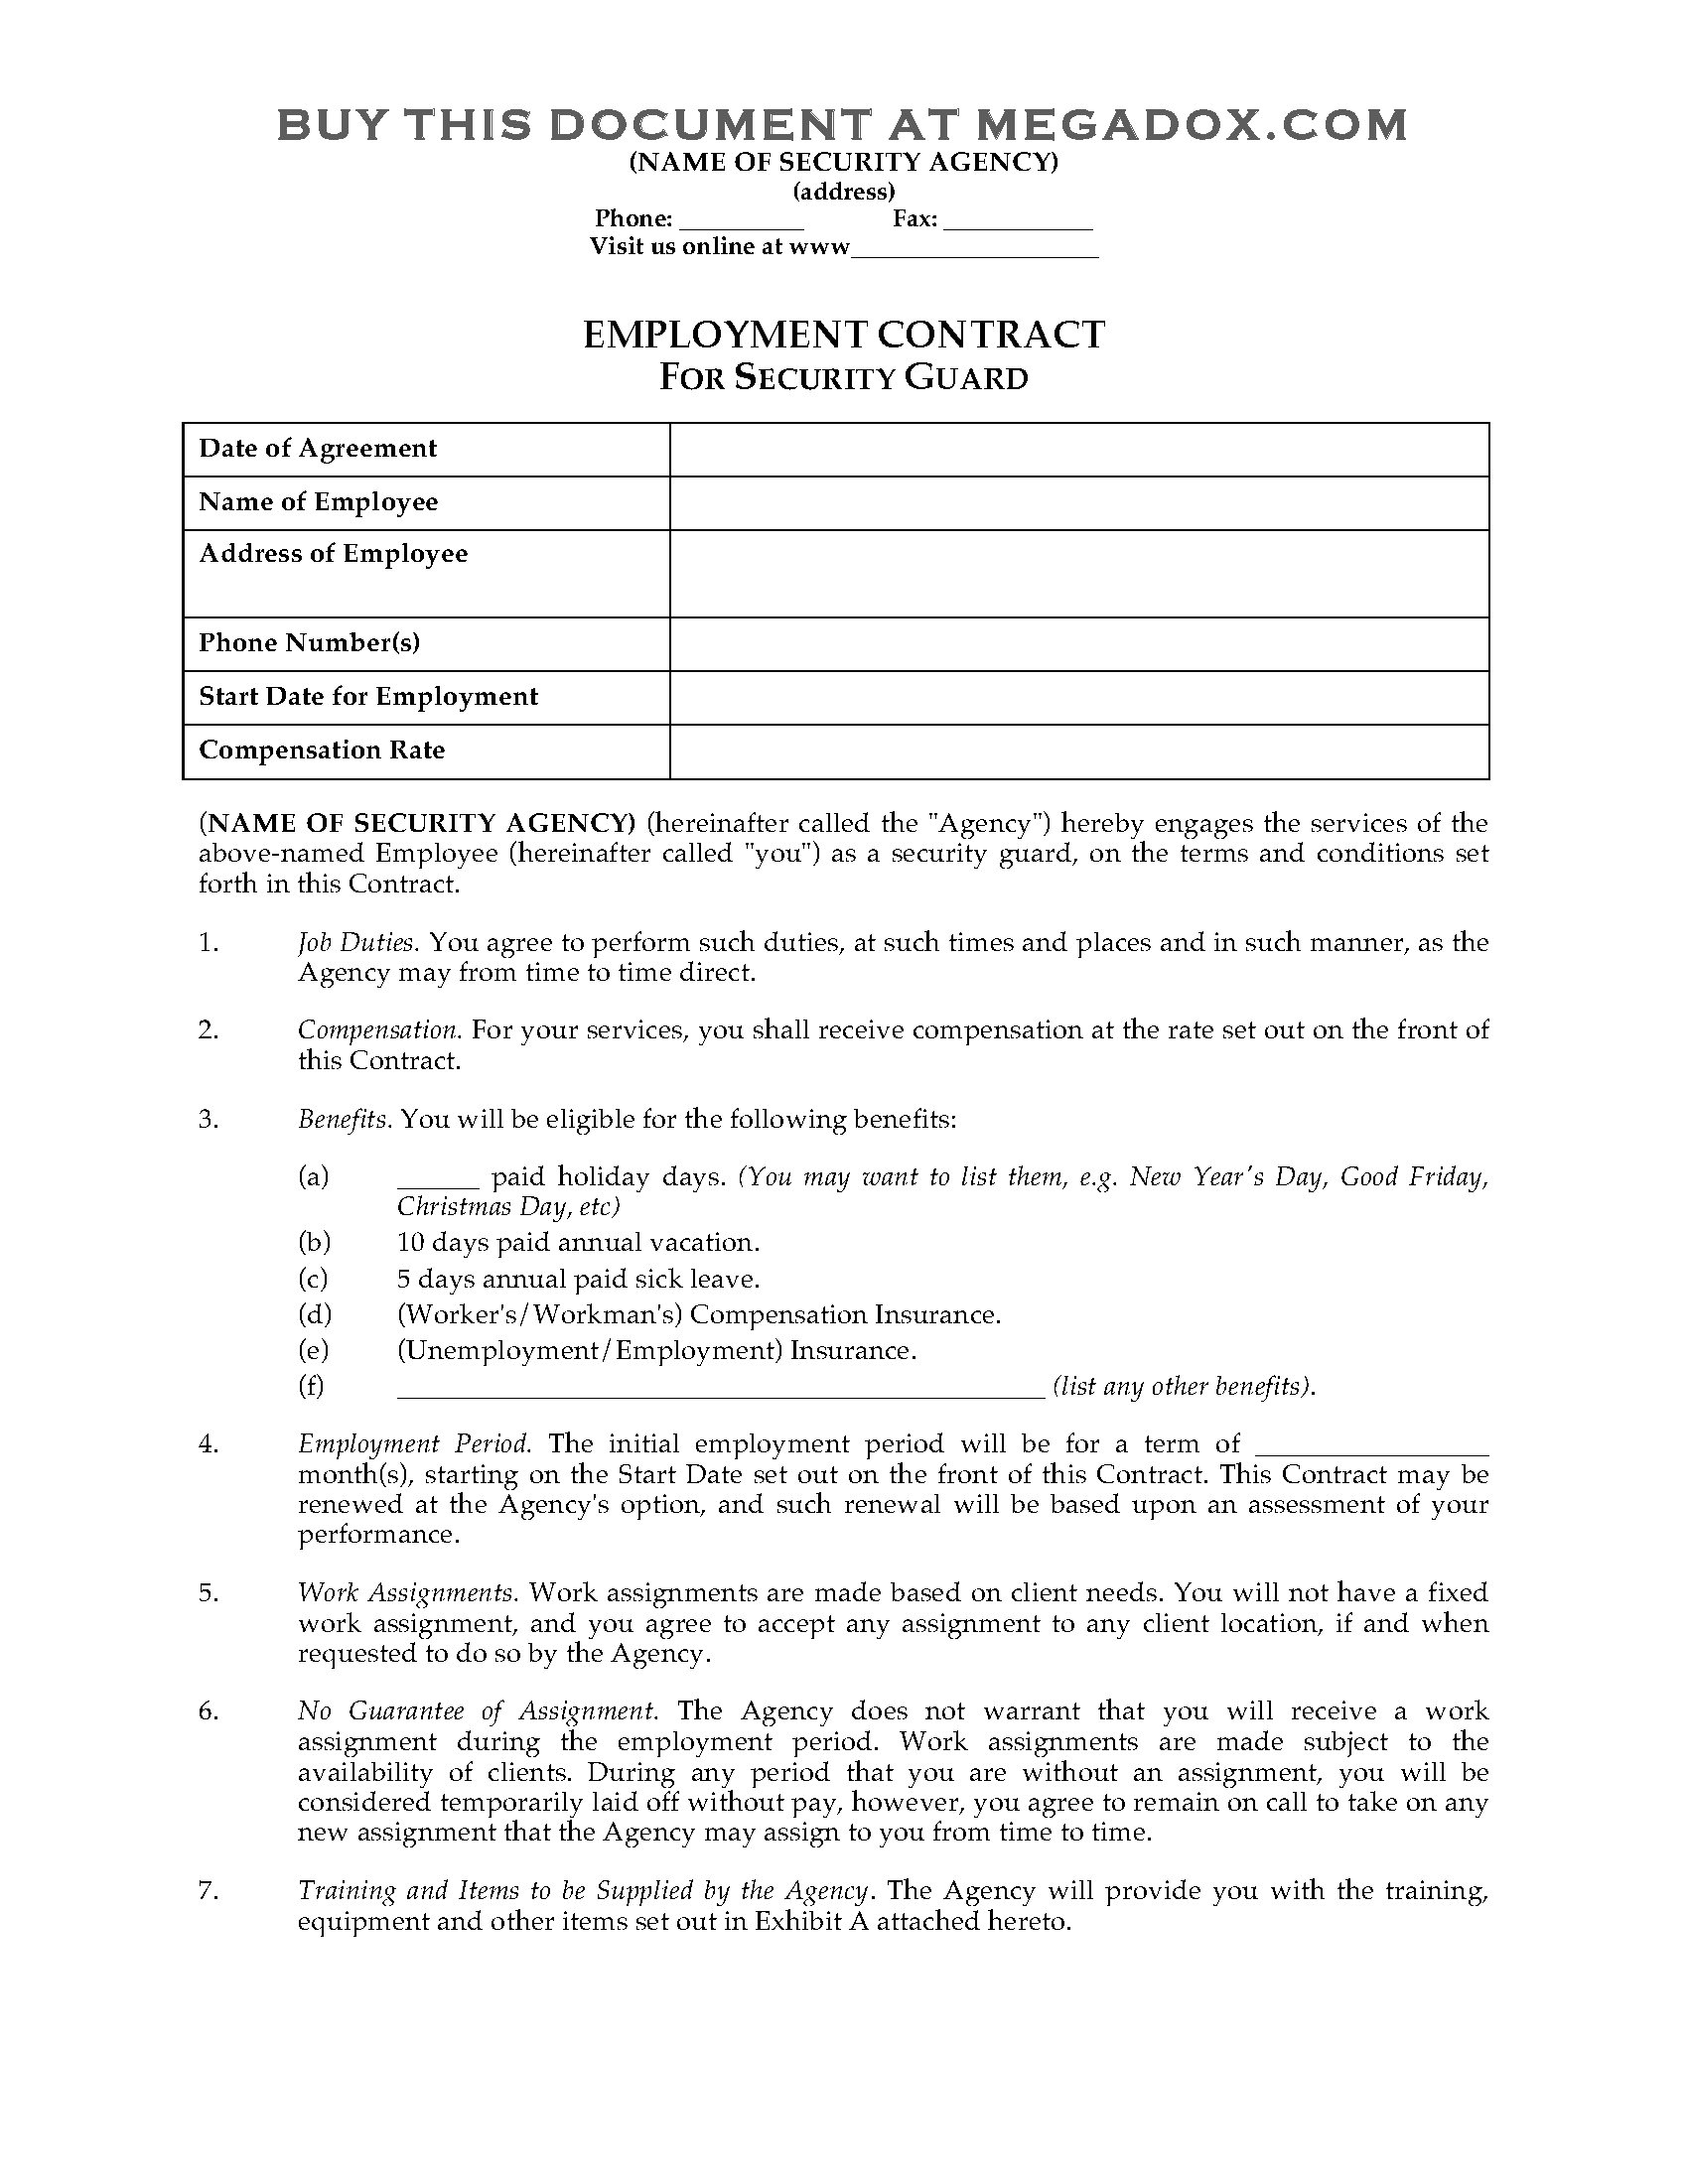 security guard employment agreement